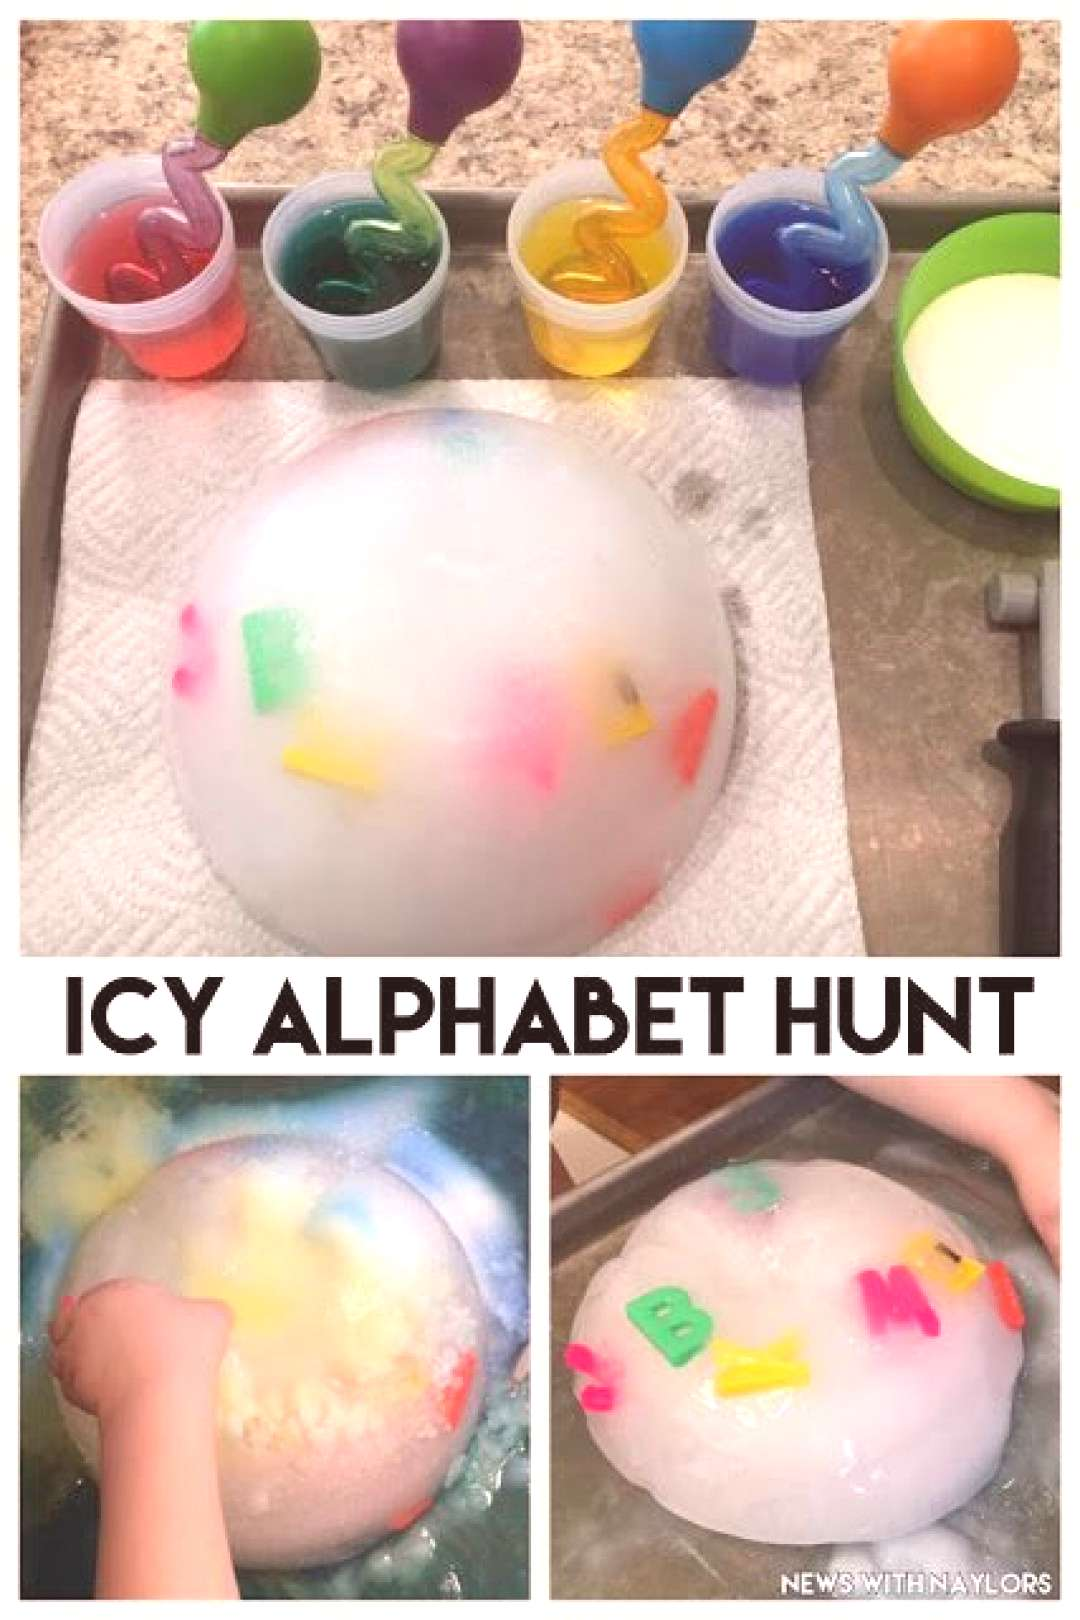 News with Naylors Letter Q Activities (ages 3 amp 23 months) Icy Alphabet Hunt. Really fun letter re